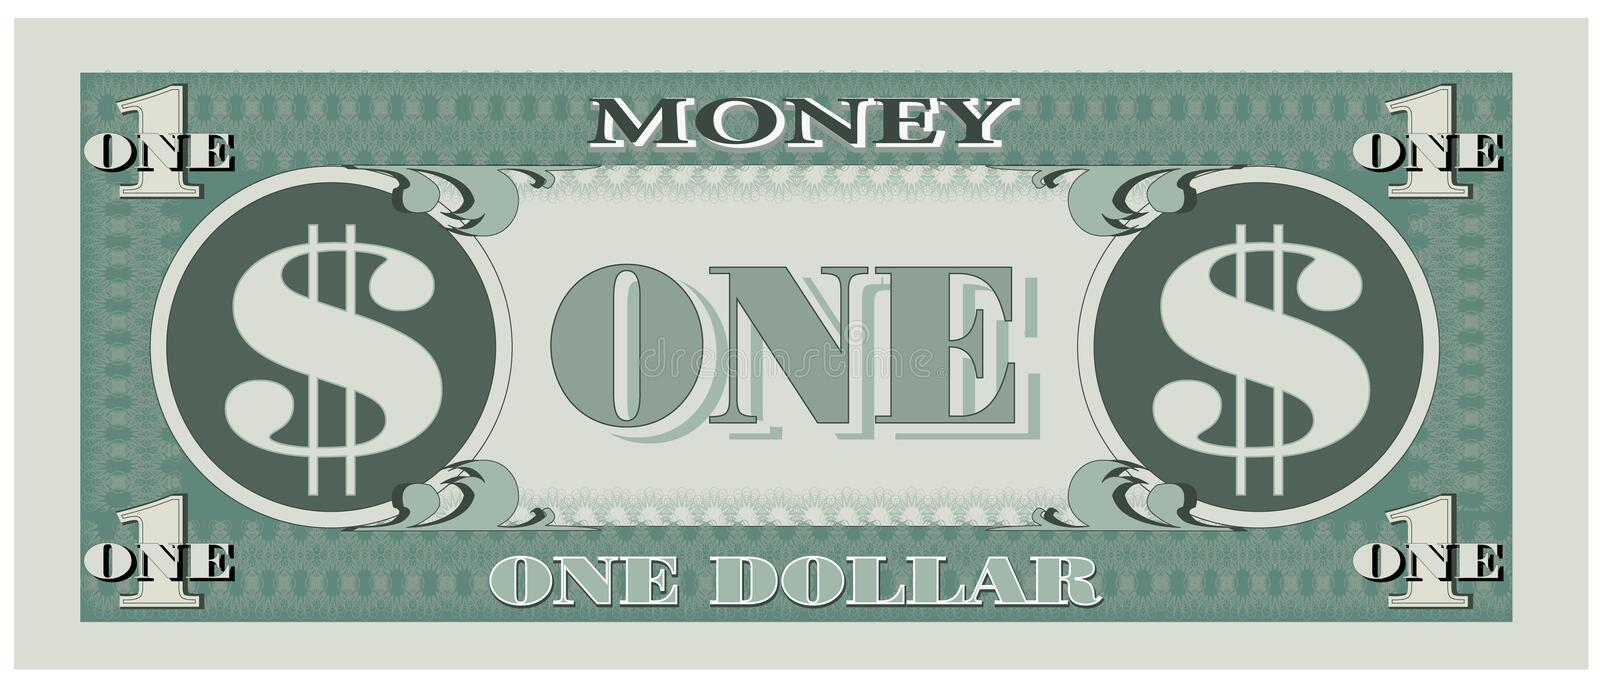 Game money - one dollar bill. Illustration of game money dollar bill